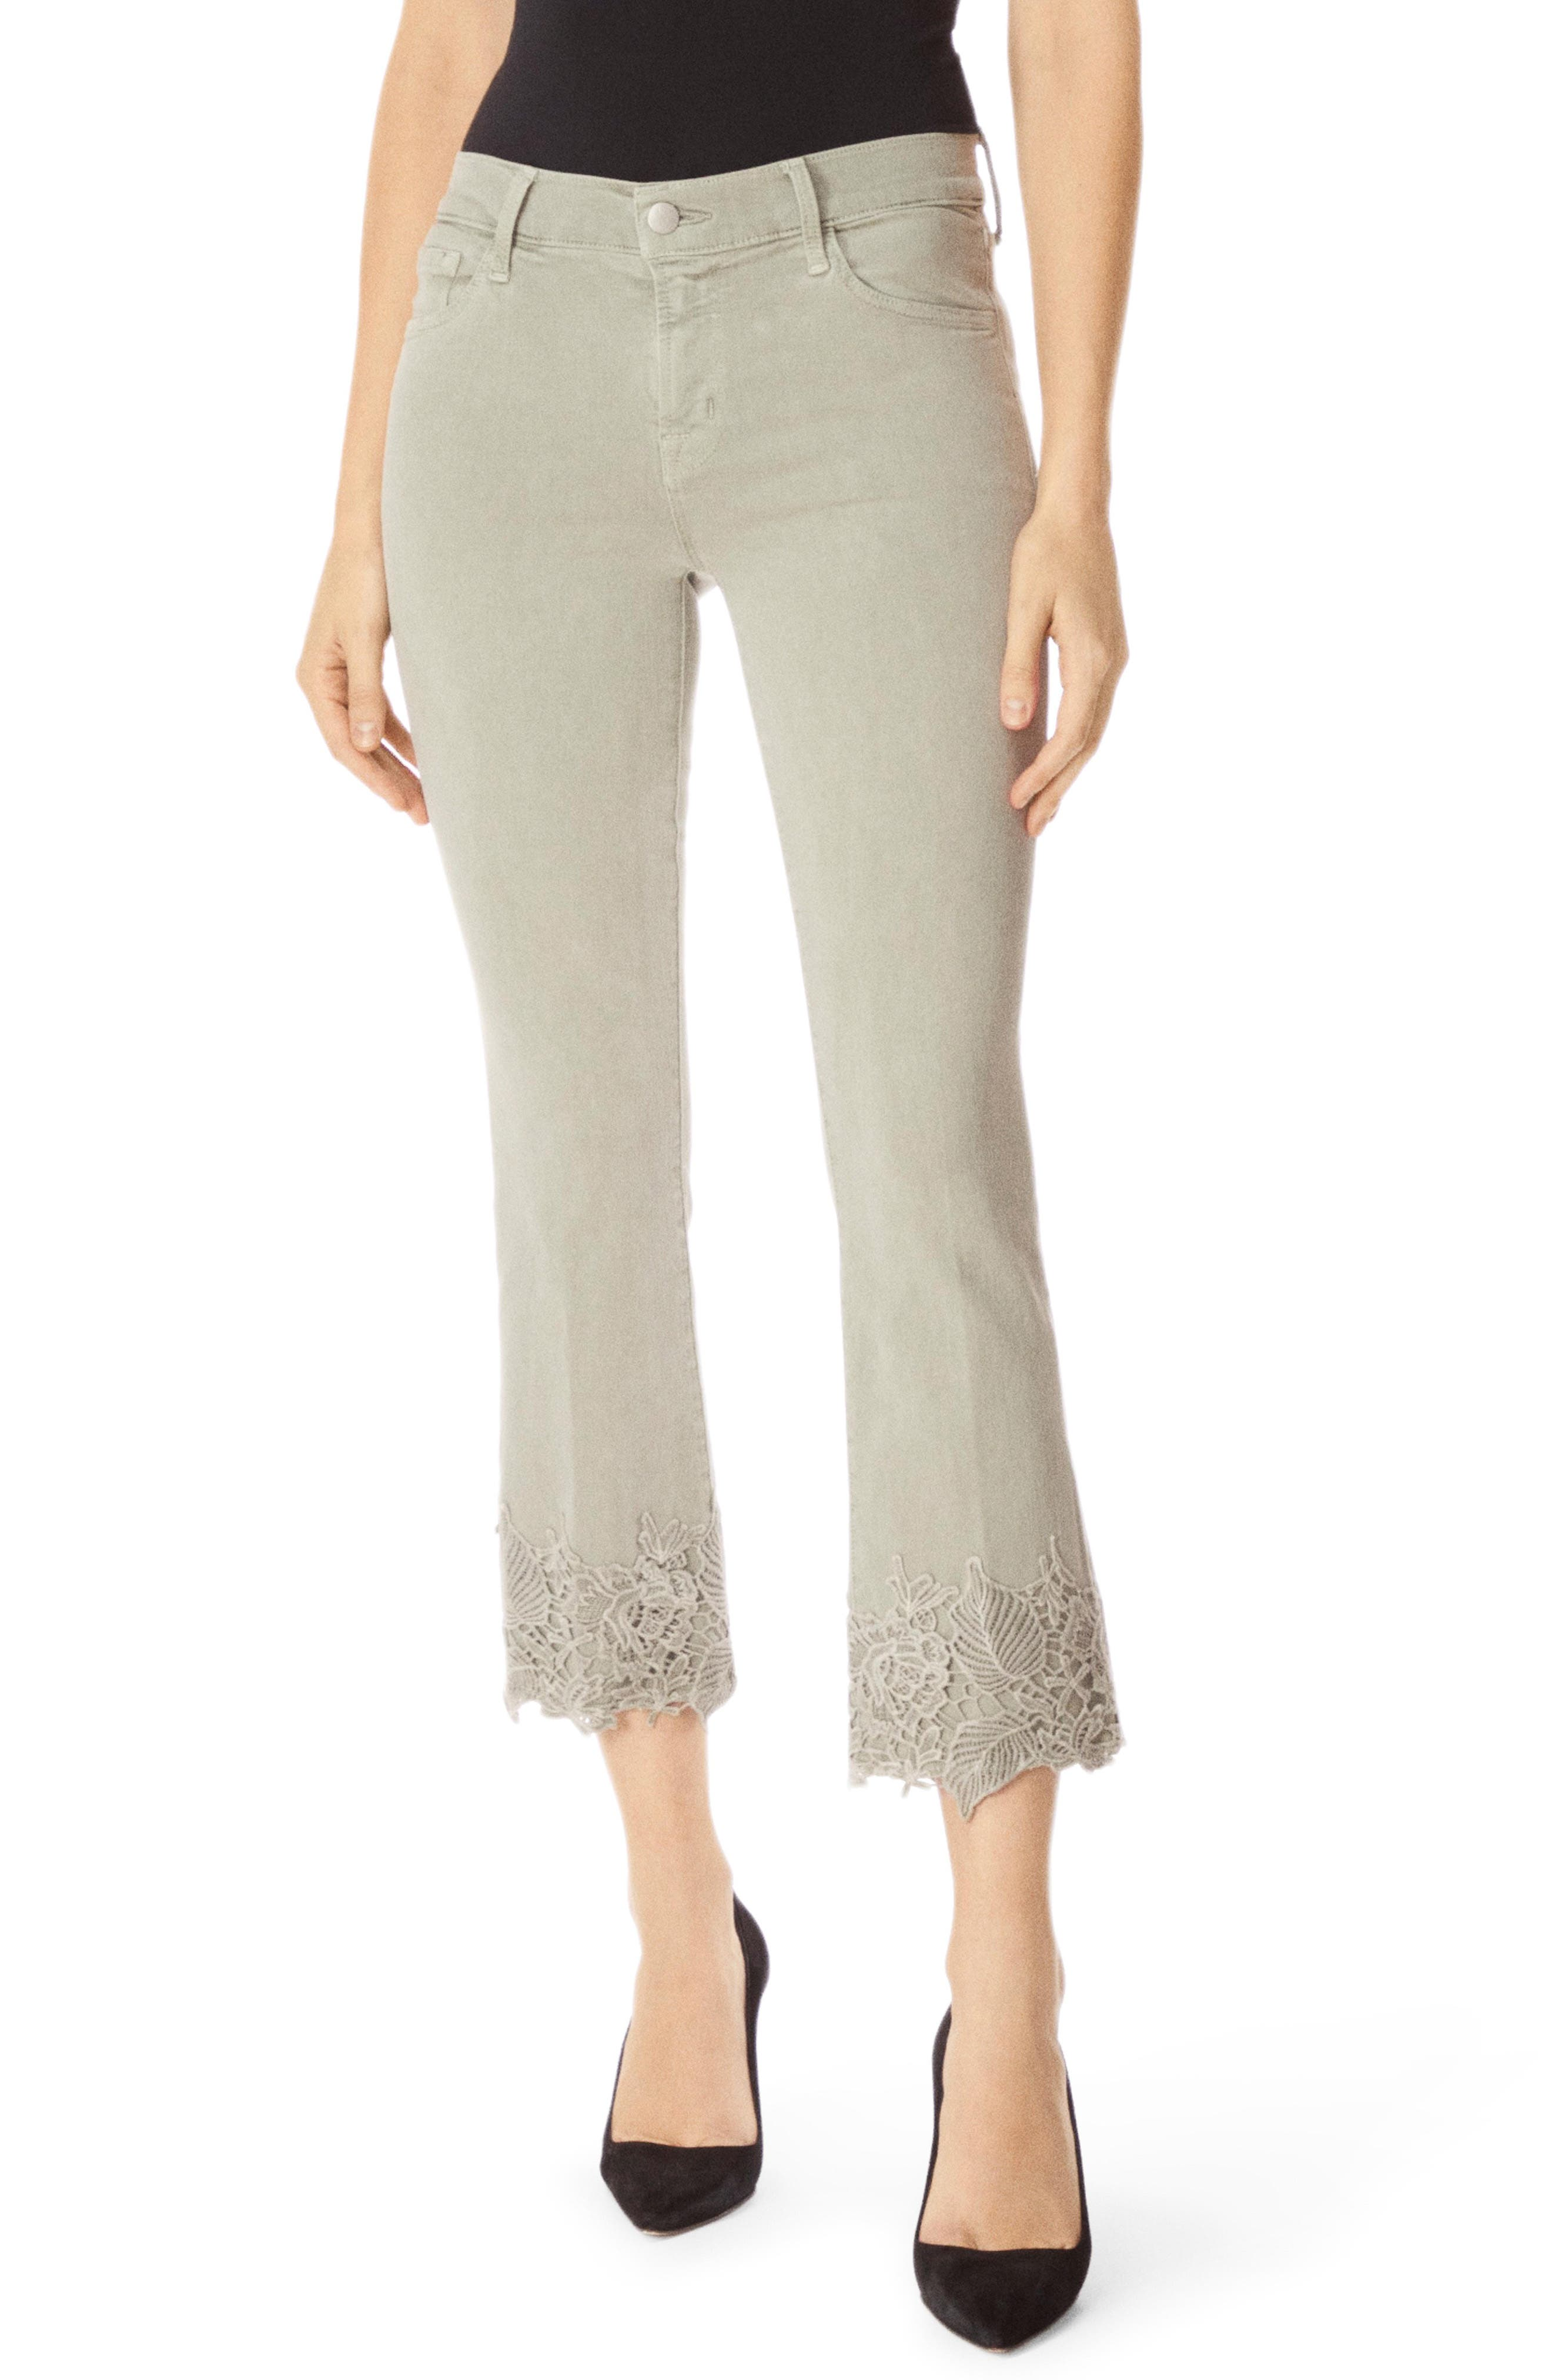 J BRAND,                             Selena Crop Bootcut Jeans,                             Main thumbnail 1, color,                             FADED GIBSON